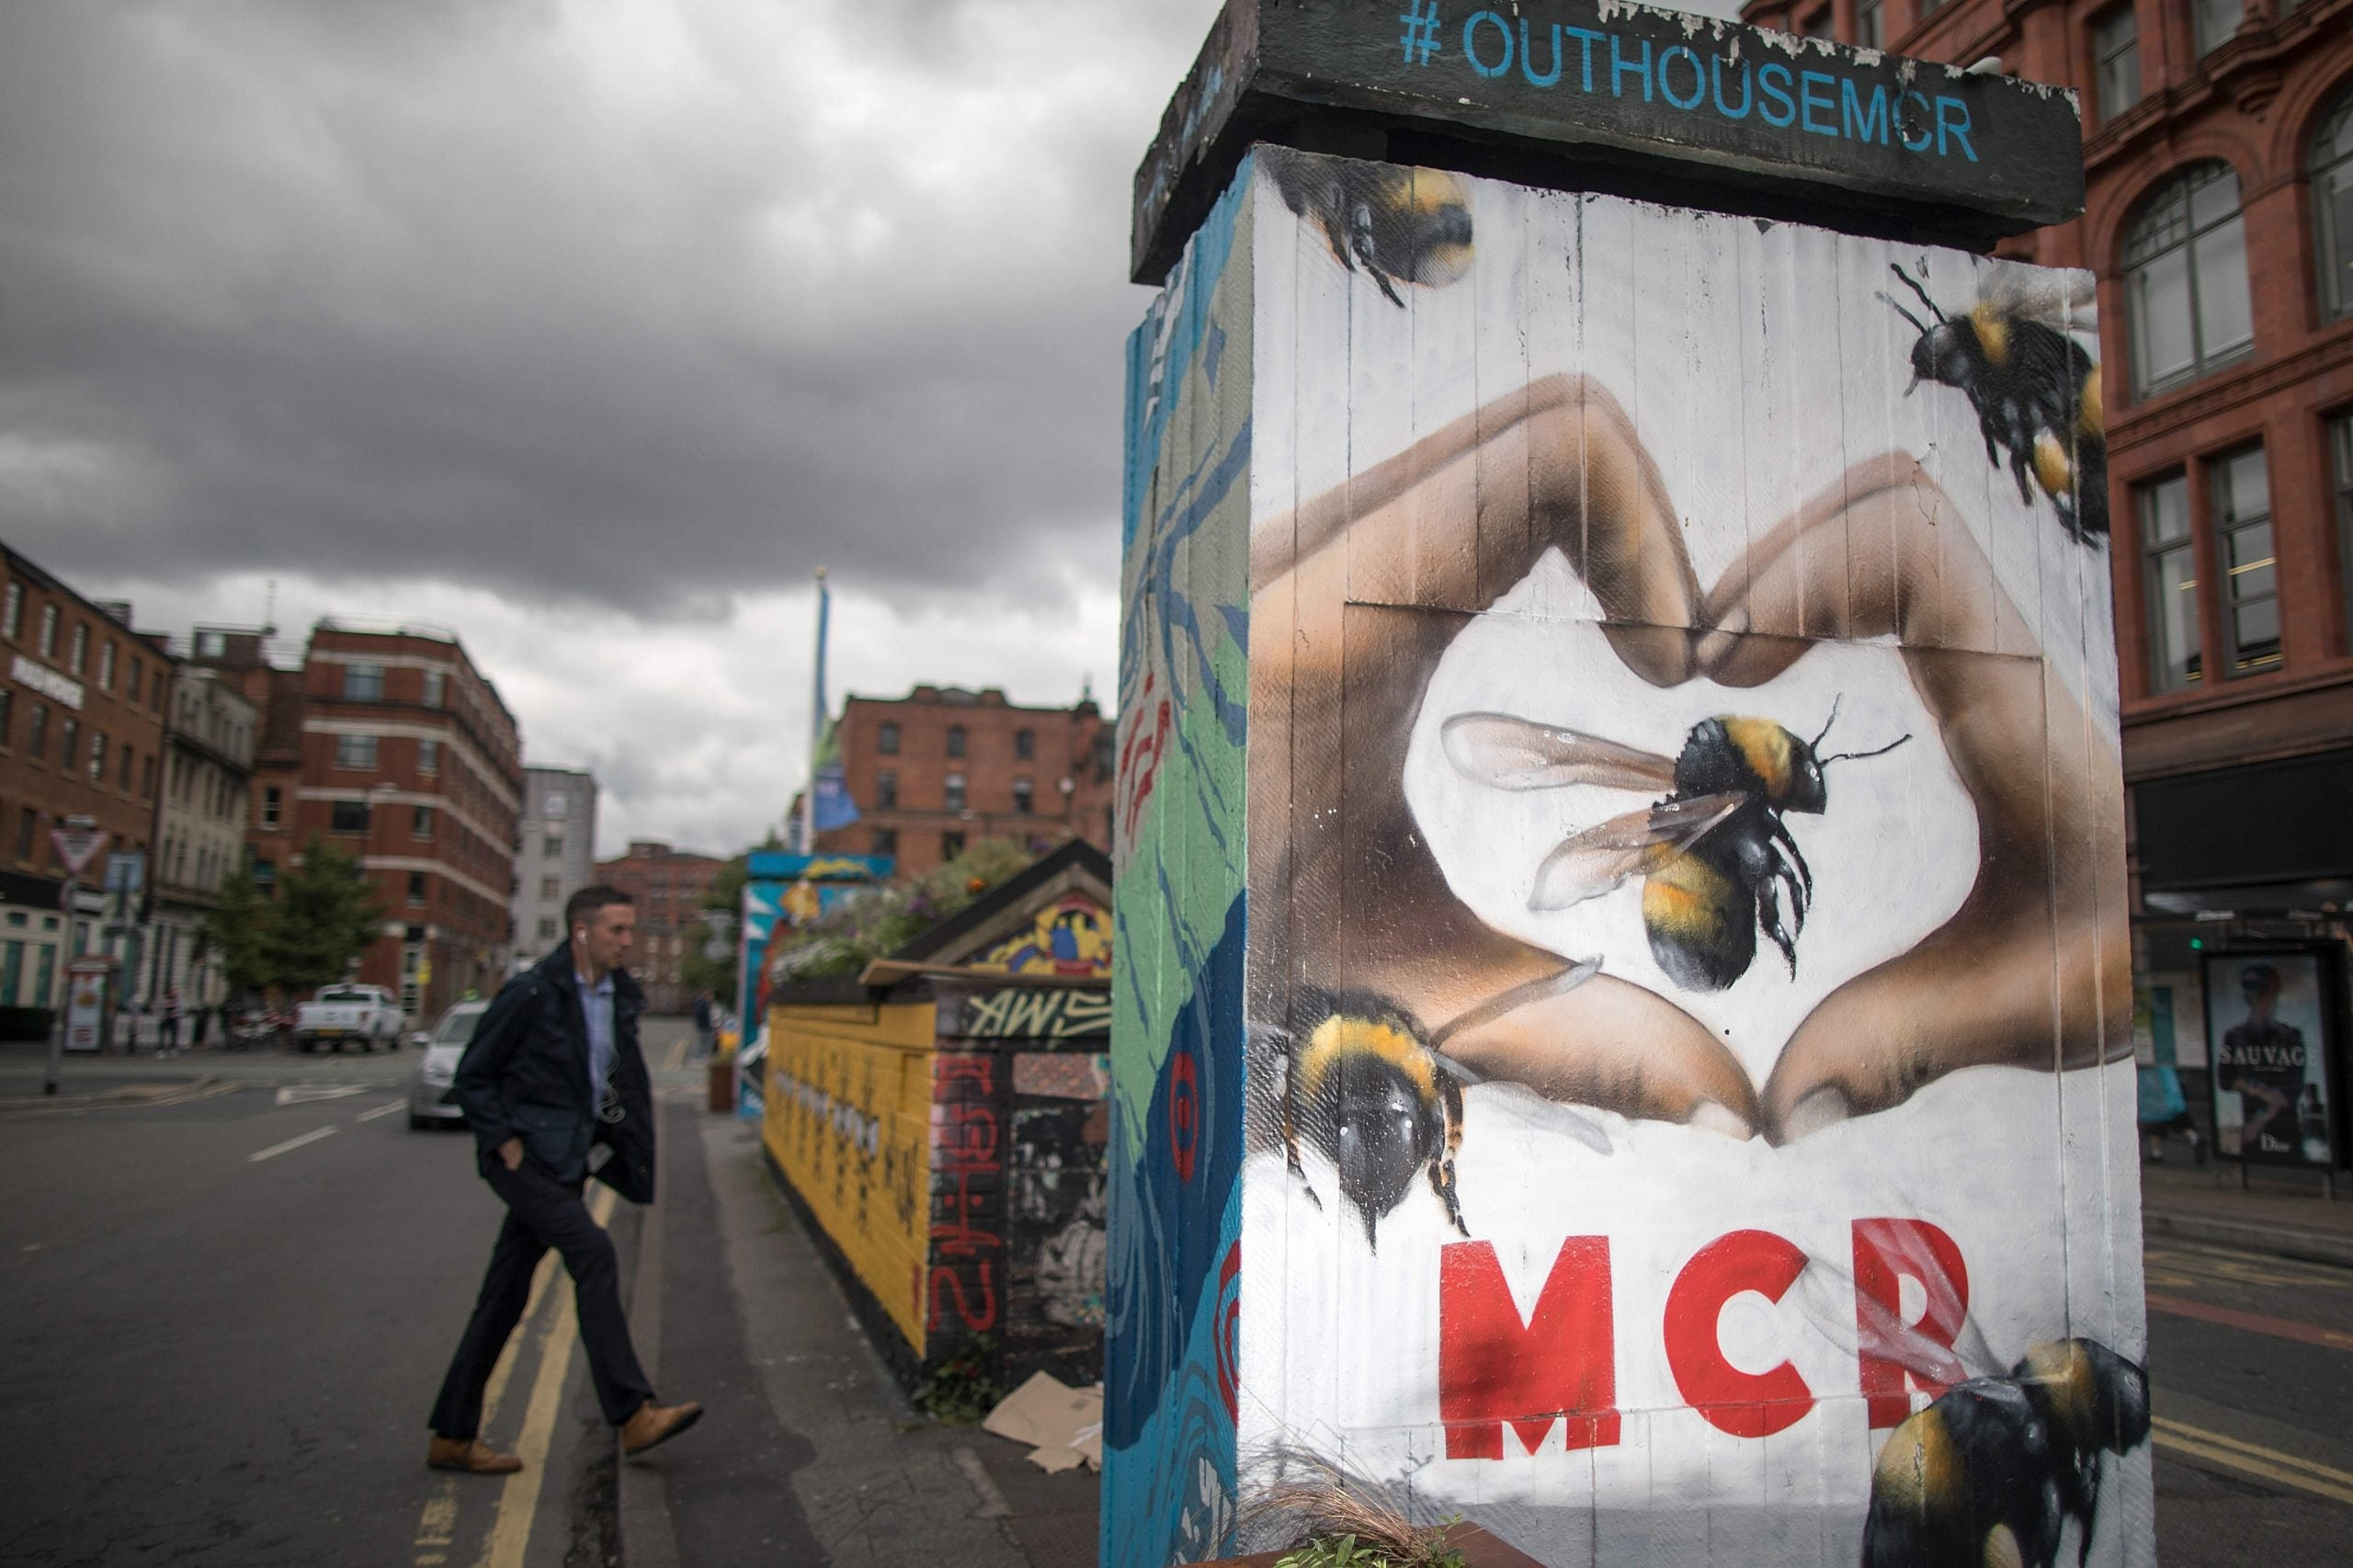 Manchester after terror - a city divided on how to prevent it again